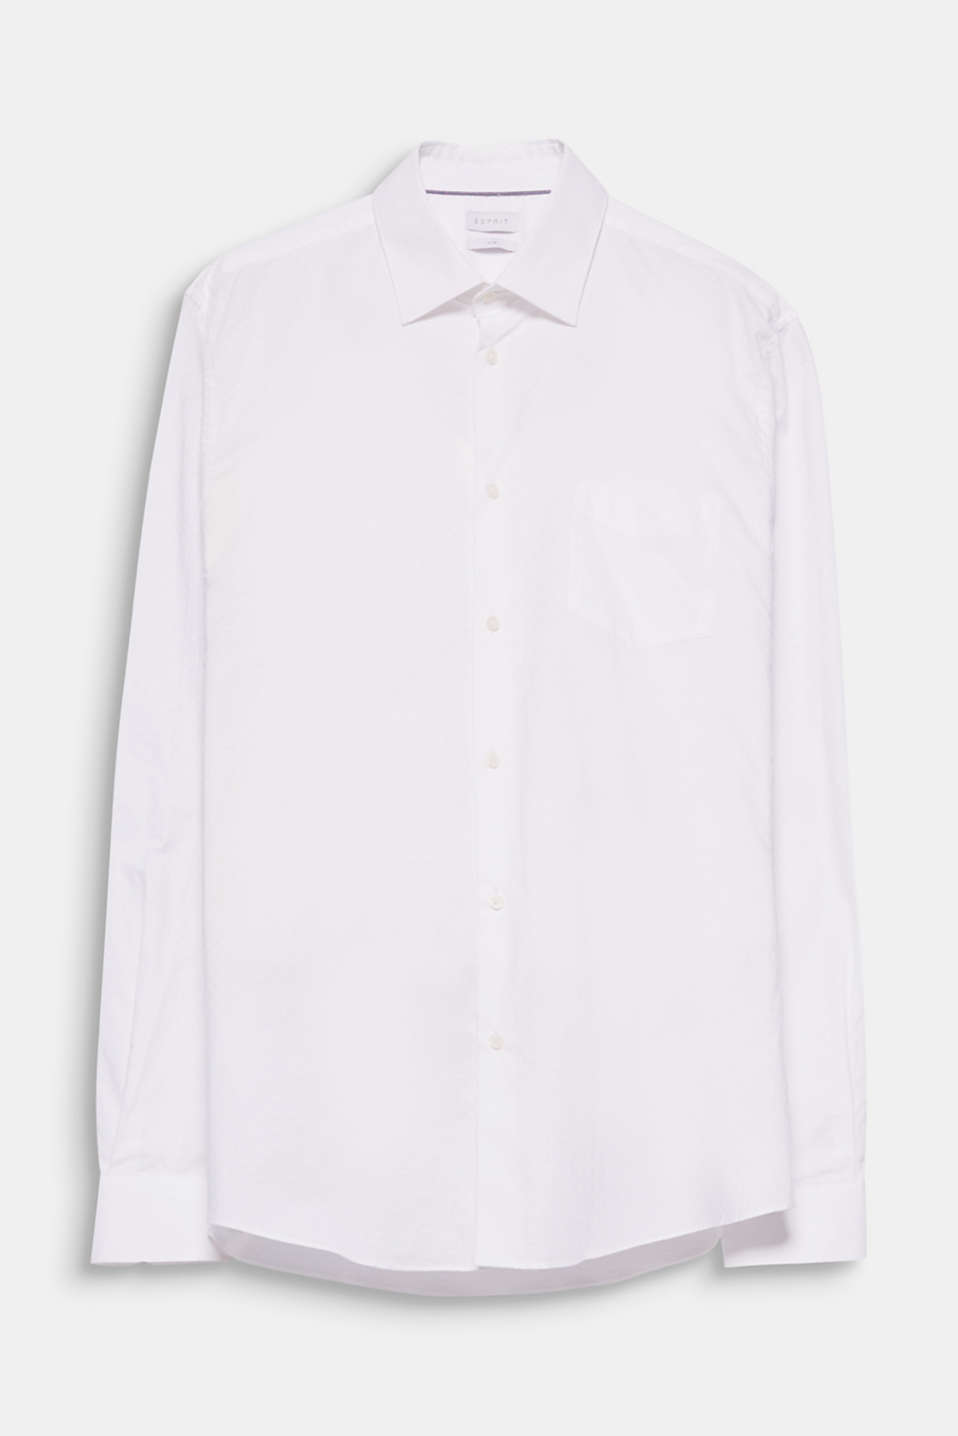 This business shirt in pure cotton offers a high level of comfort thanks to the mechanical stretch.